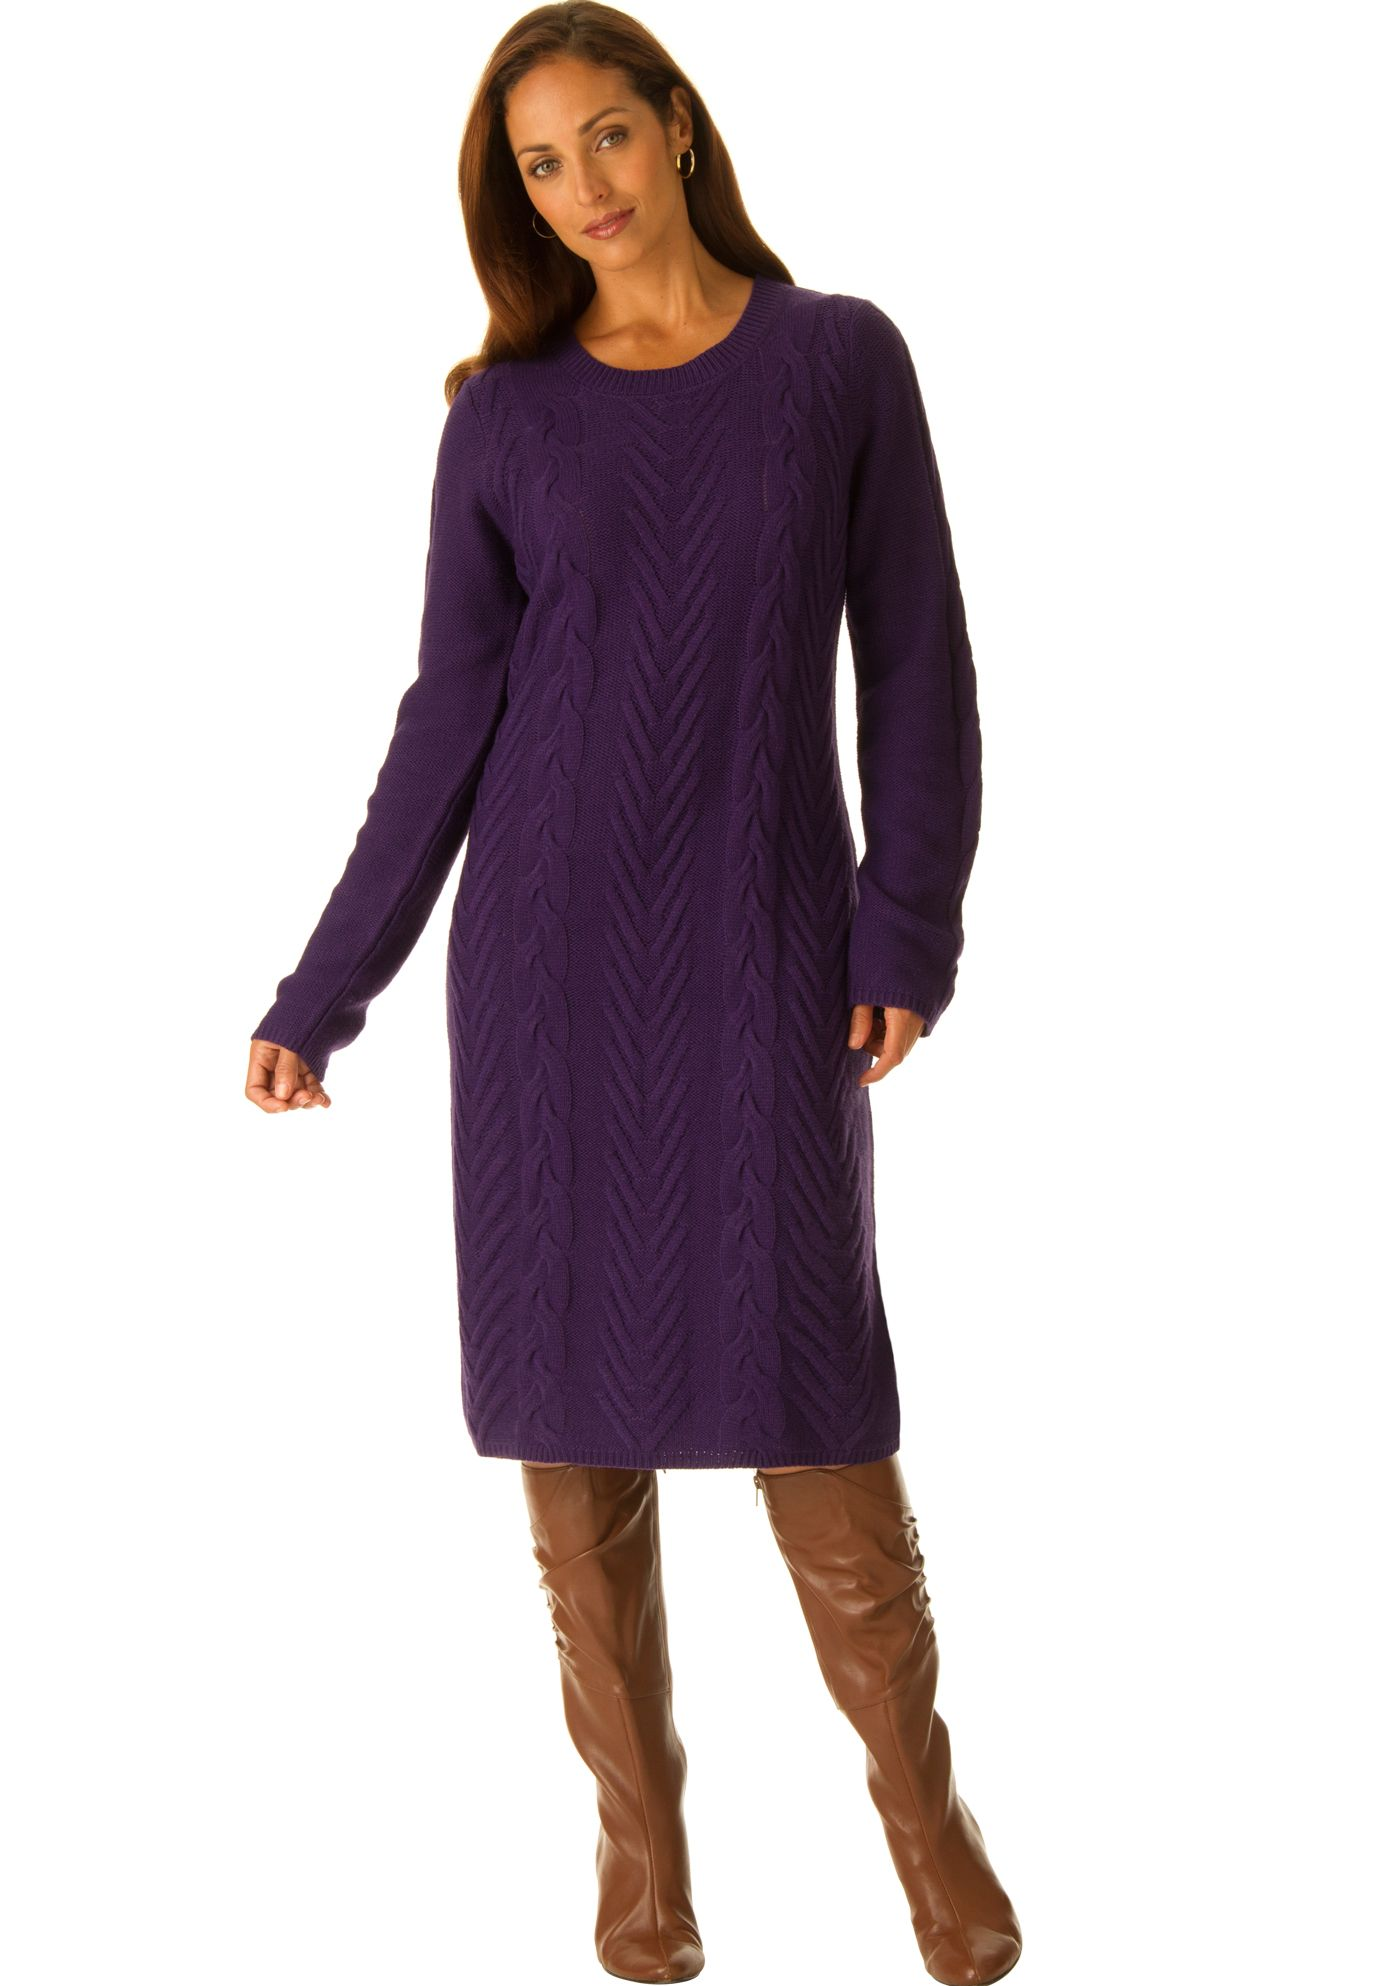 ca9bdb6b39f Cable knit plus size sweater dress in refined soft cable for a flawless  fit. in a shaped fit that gives you classic